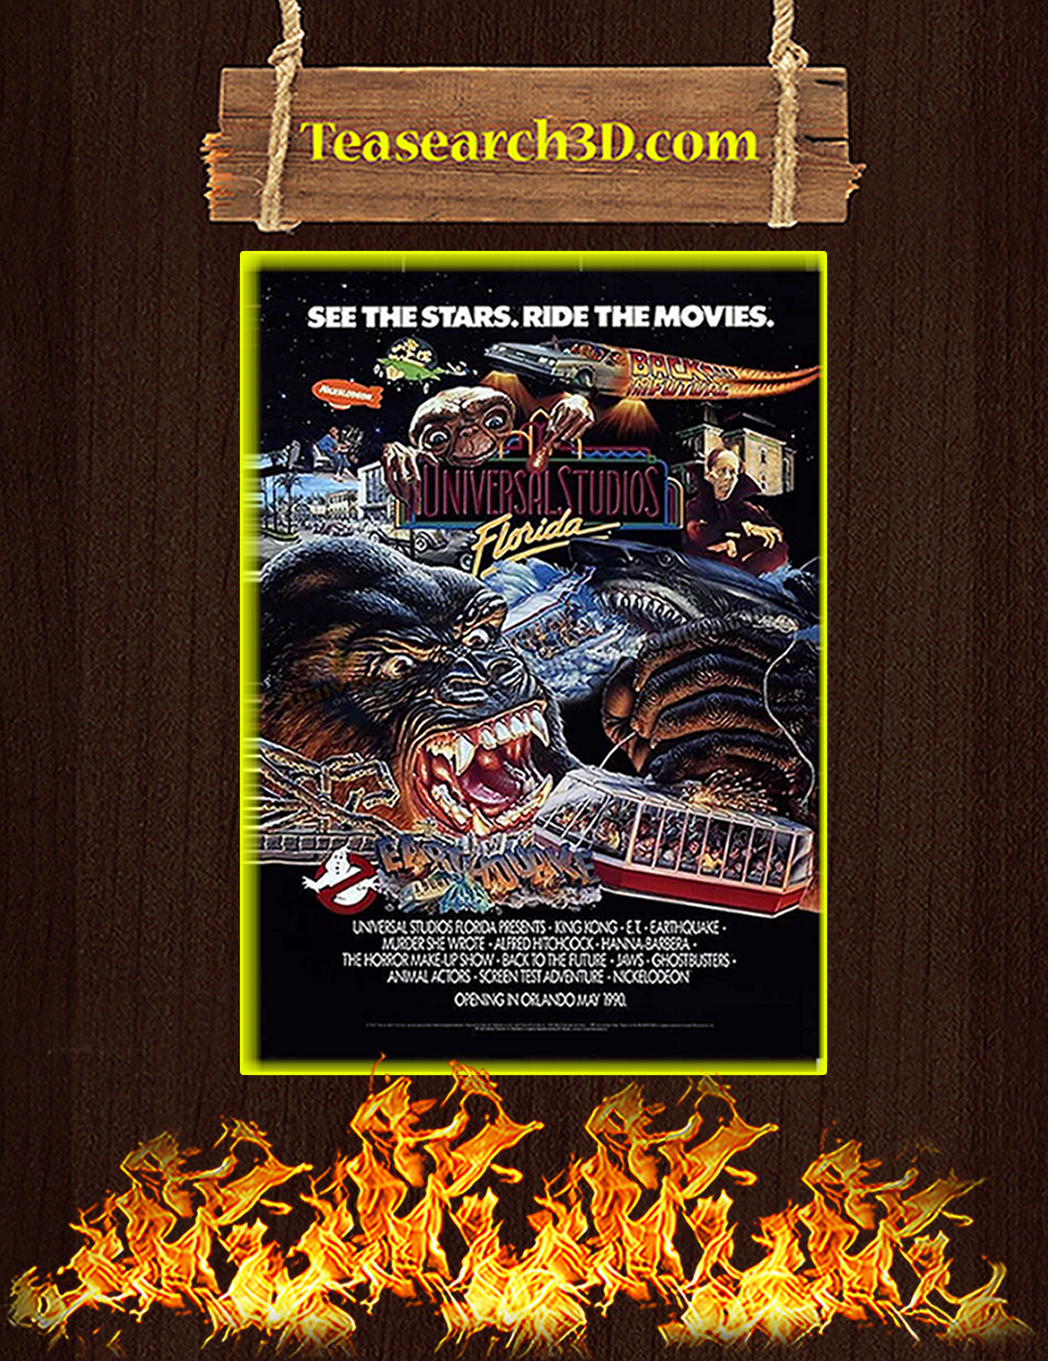 Universal studios see the stars ride the movies poster A1